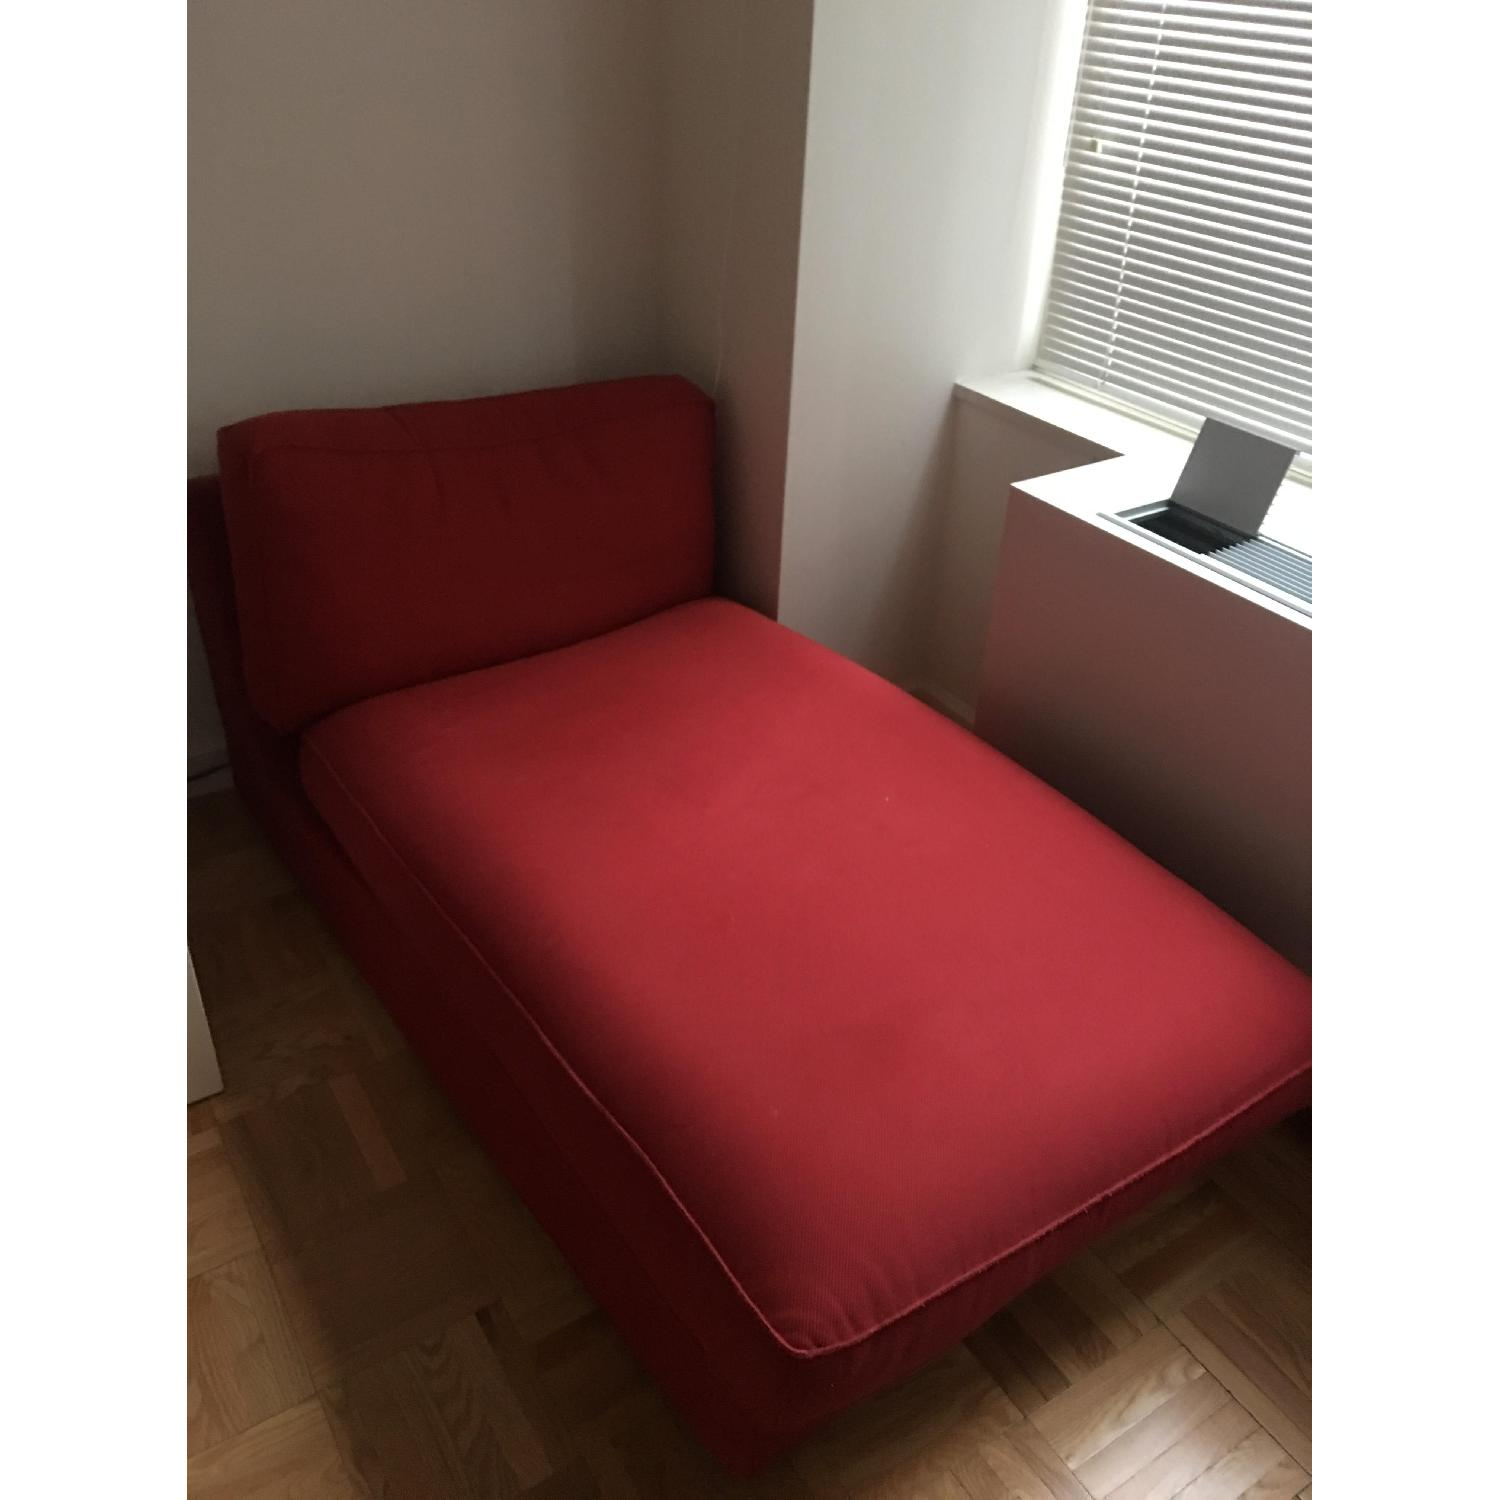 Ikea Kivik Chaise Lounge; Ikea Kivik Chaise Lounge-0 ...  sc 1 st  AptDeco : ikea chaise - Sectionals, Sofas & Couches